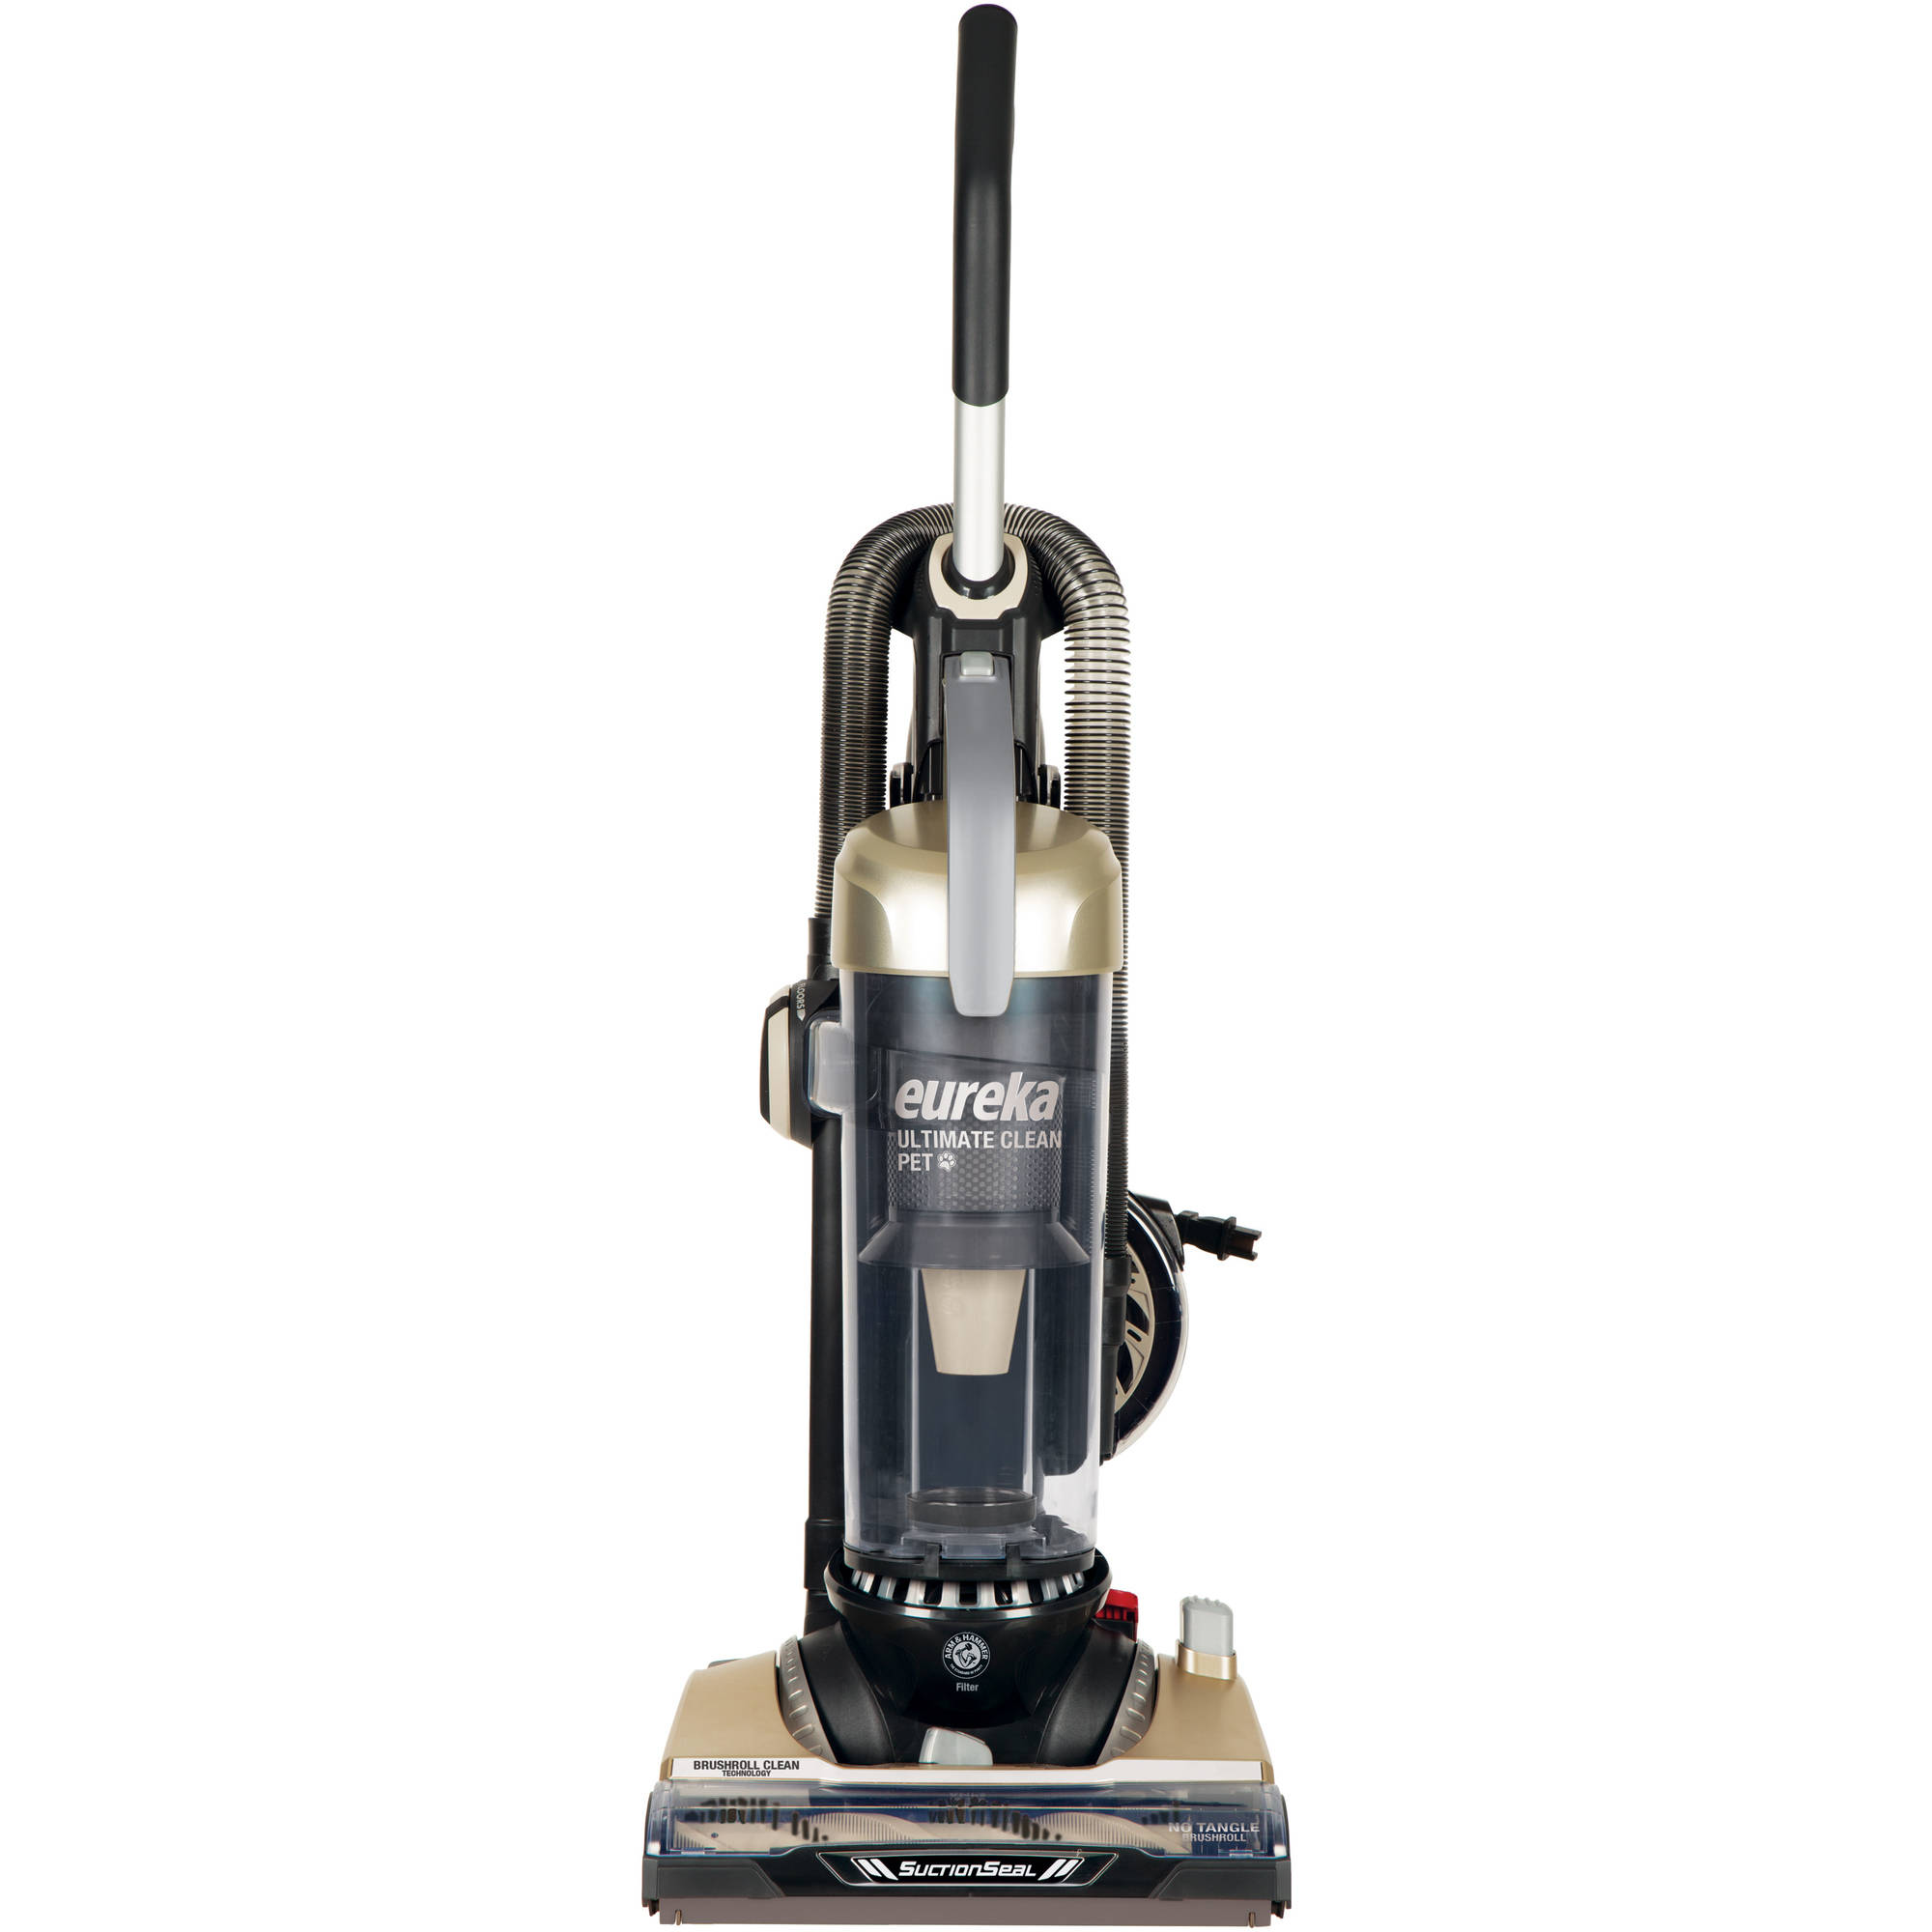 Eureka Ultimate Clean Pet Cyclonic Bagless Upright Vacuum